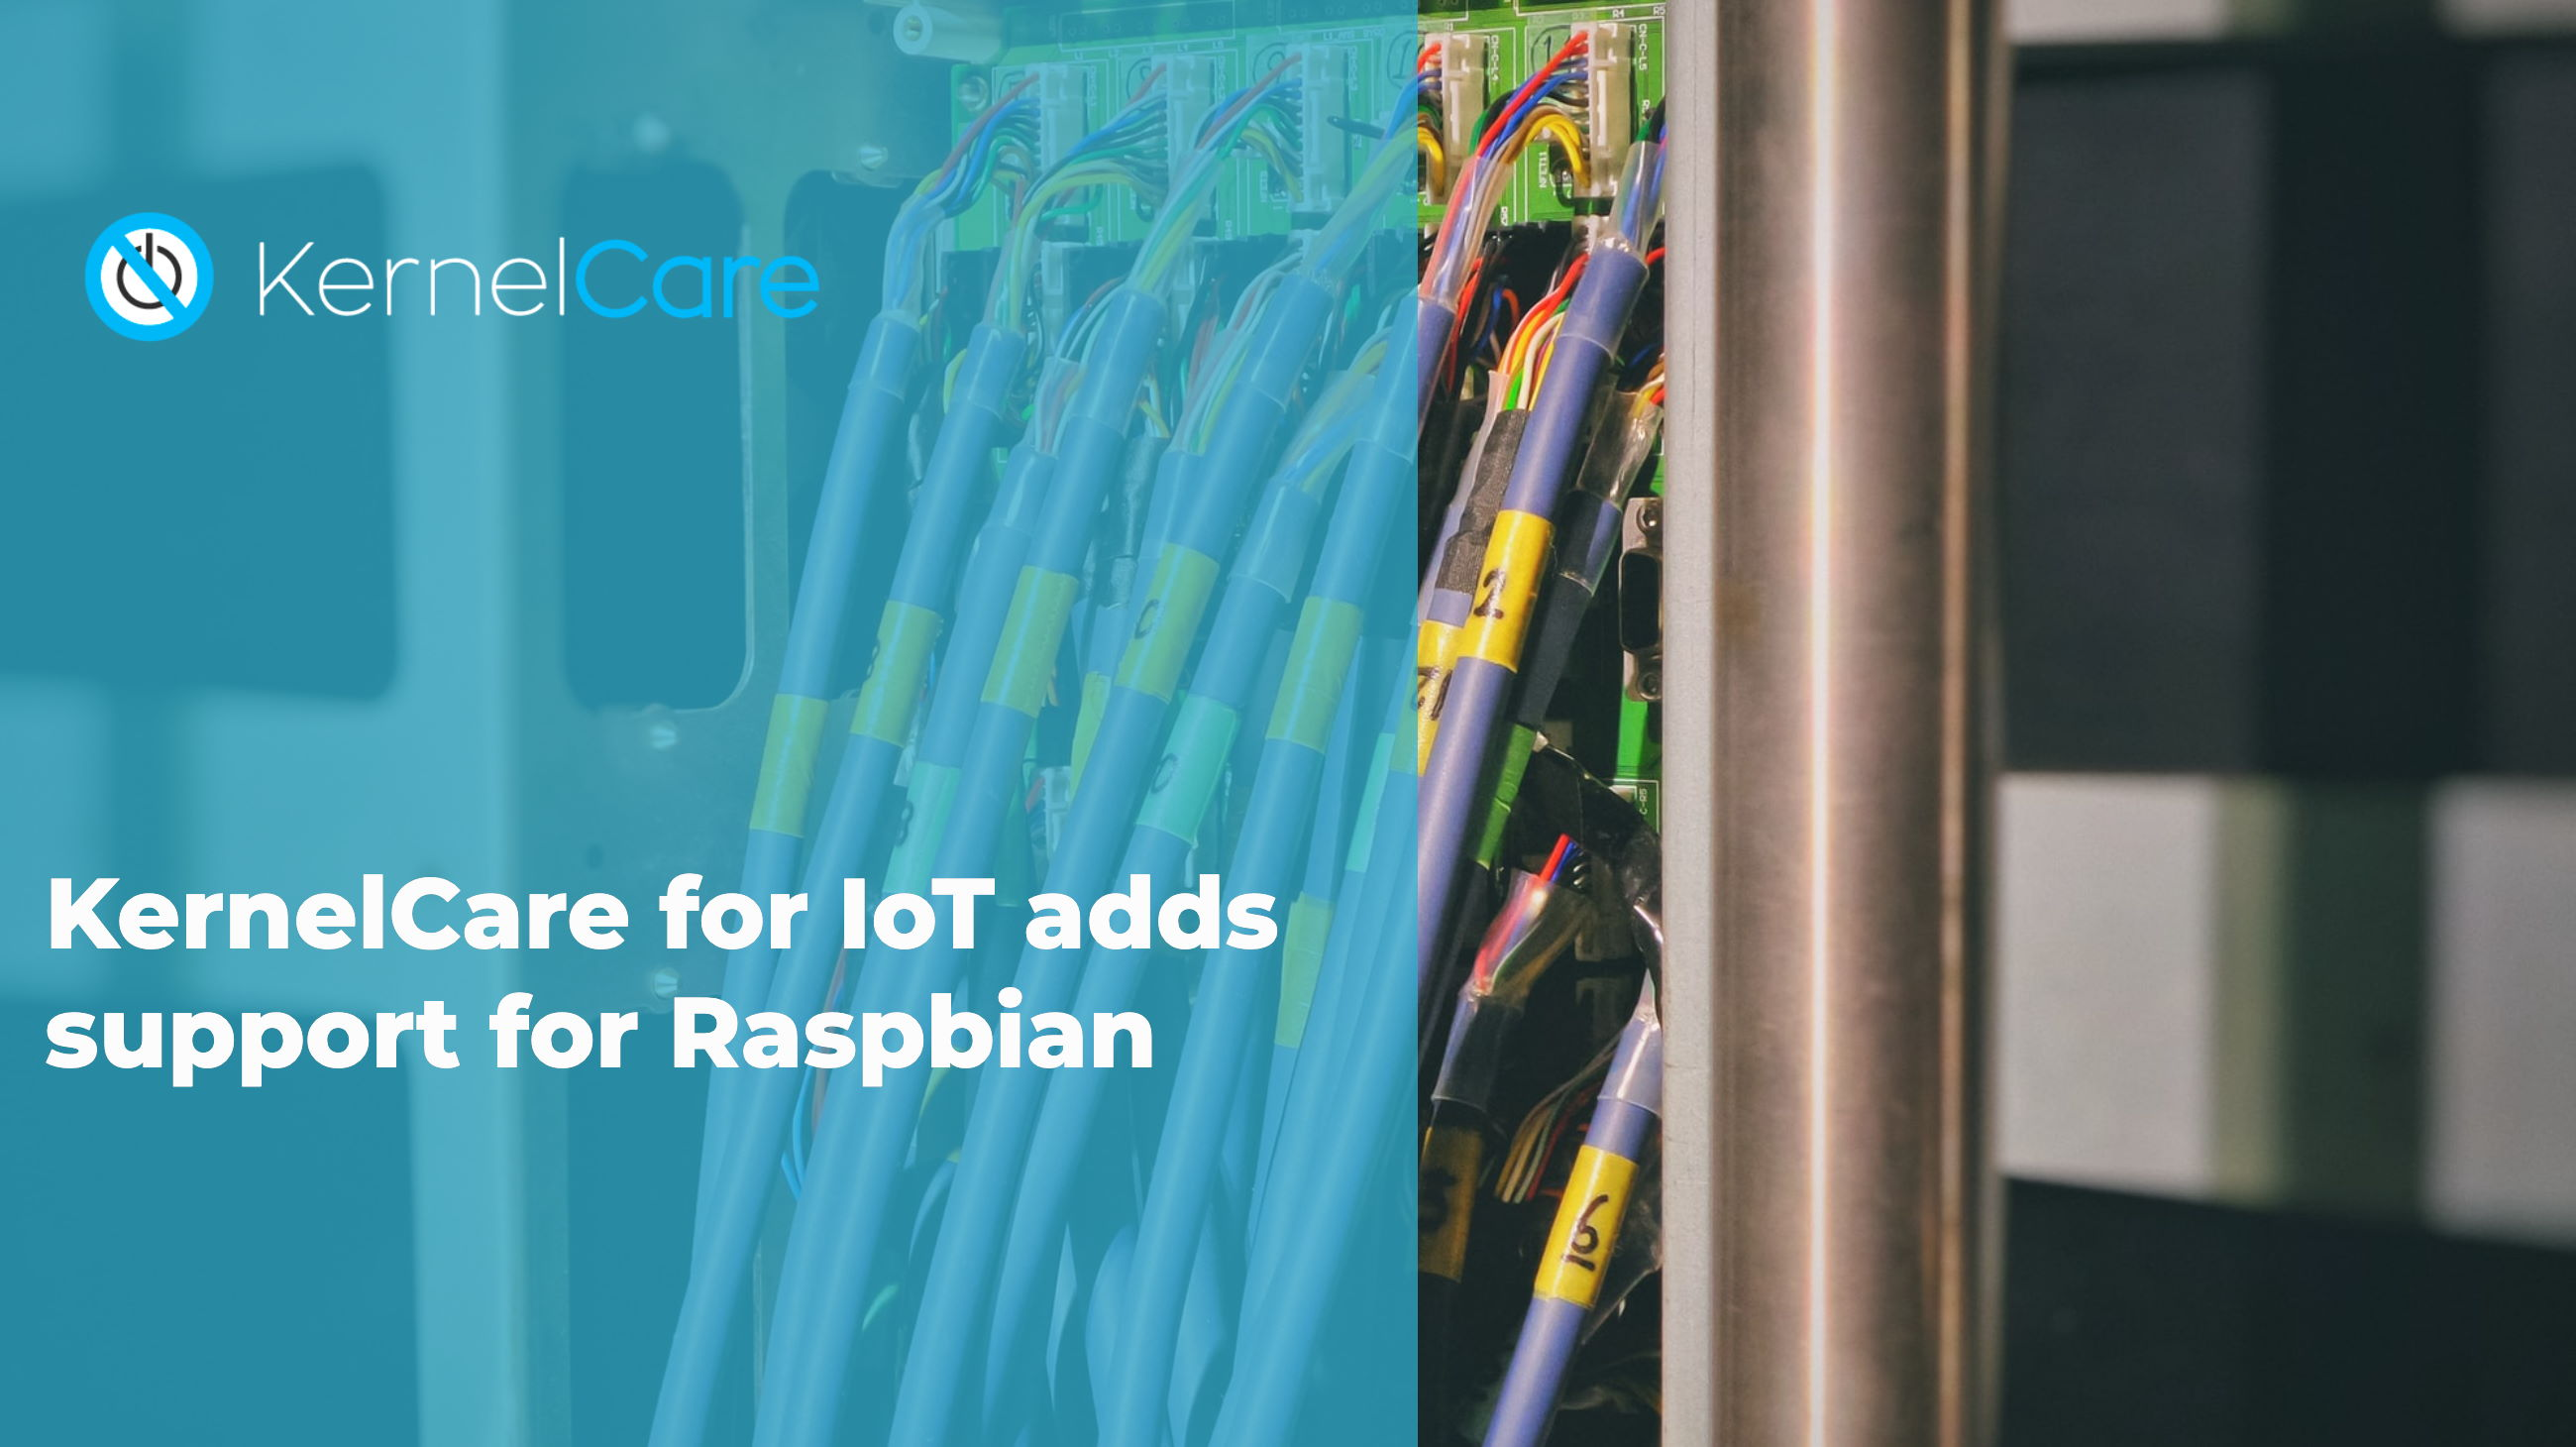 KernelCare for IoT adds support for Raspbian